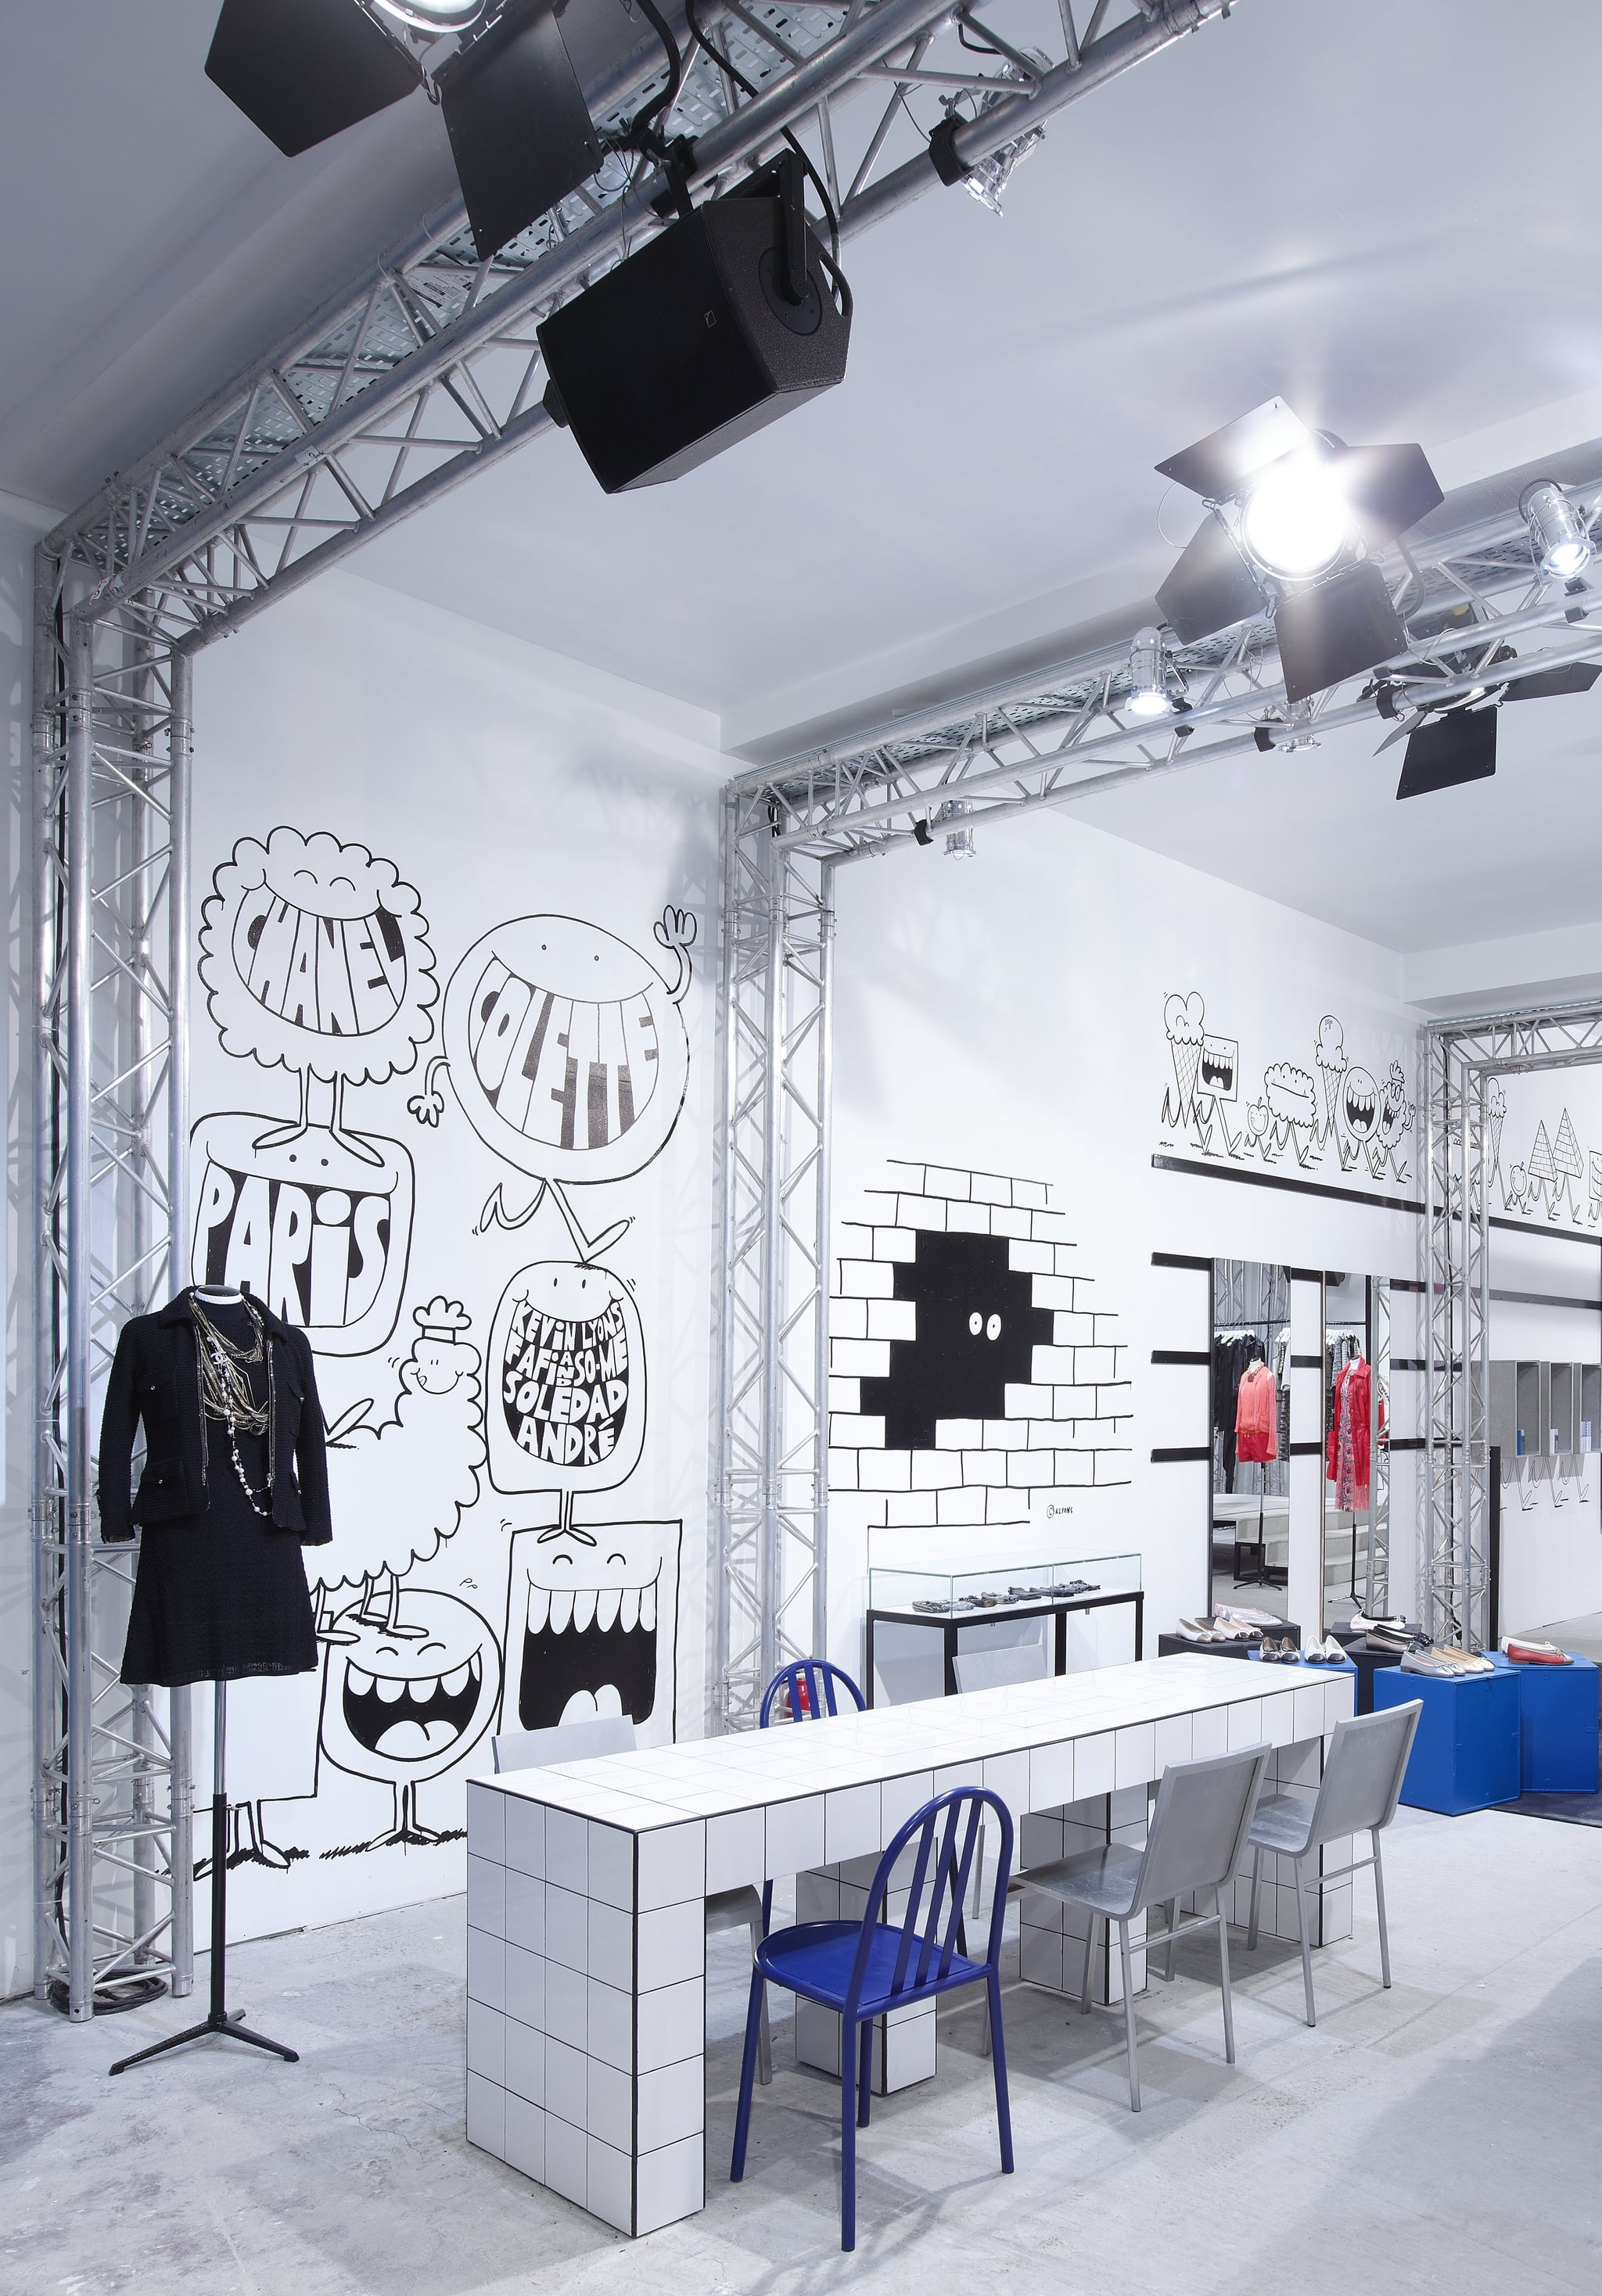 Chanel and colette collaborate on pop up store rue st honore paris popsuga - Magasin colette paris ...